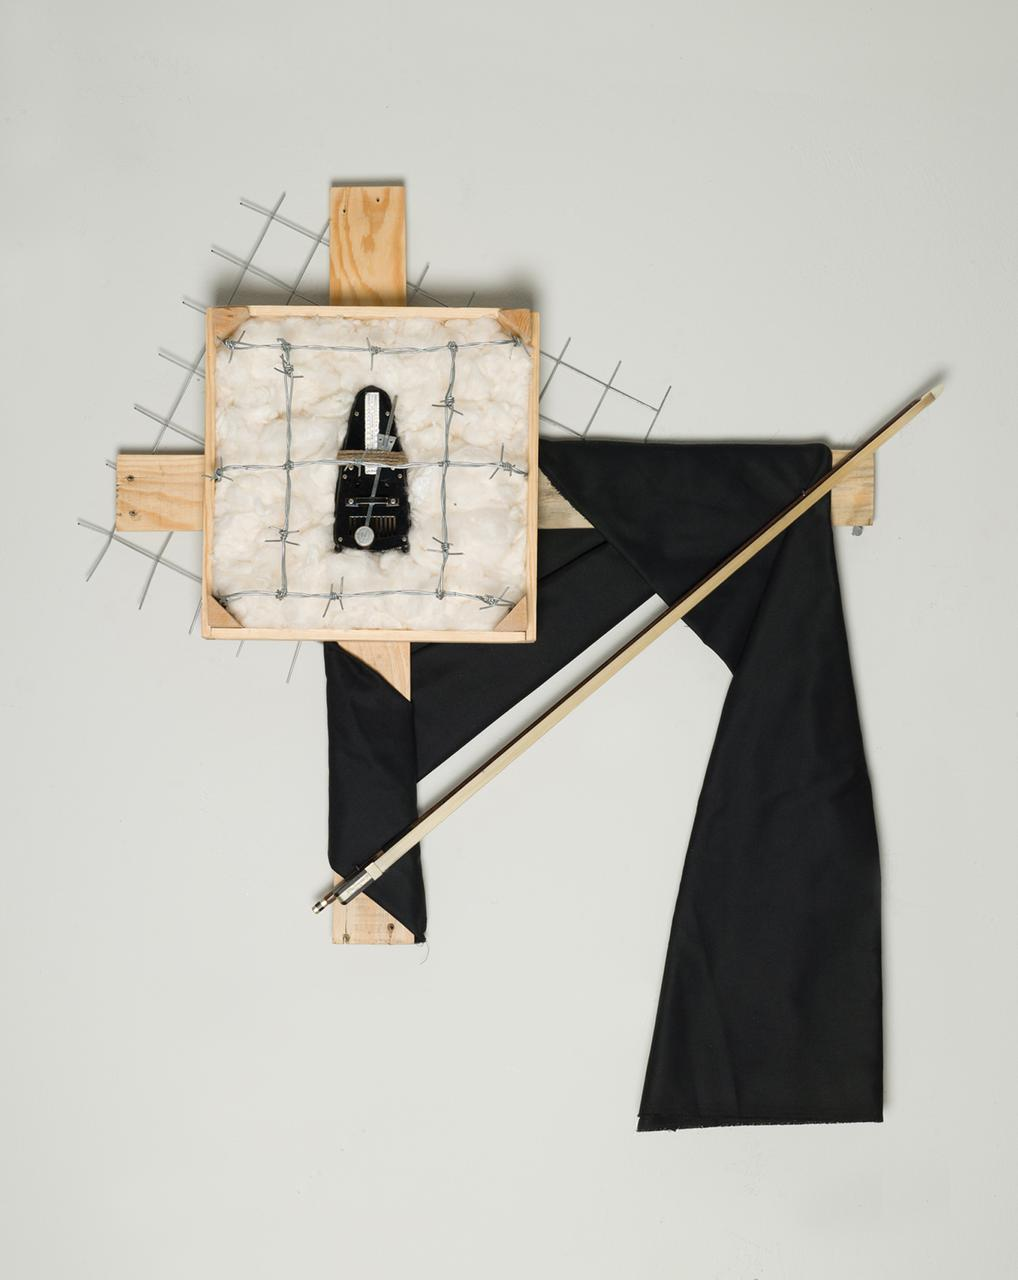 Where The Music Goes When We Don't Listen, 90 cm x 78 cm x 12 cm, wood, iron, cotton, metronome, fabric, fiddle stick, 2018